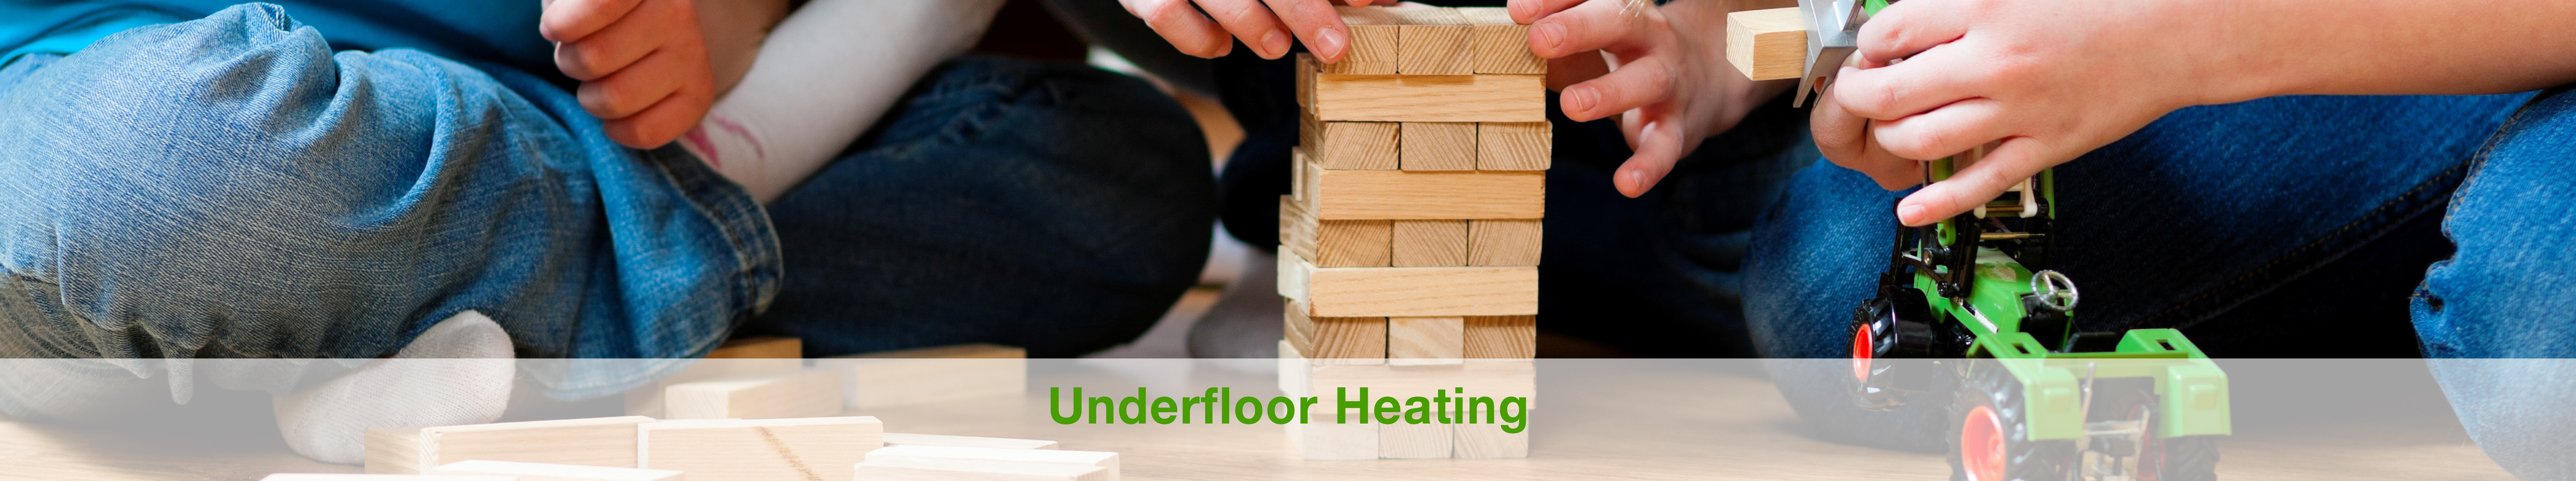 Underfloor Heating Epsom